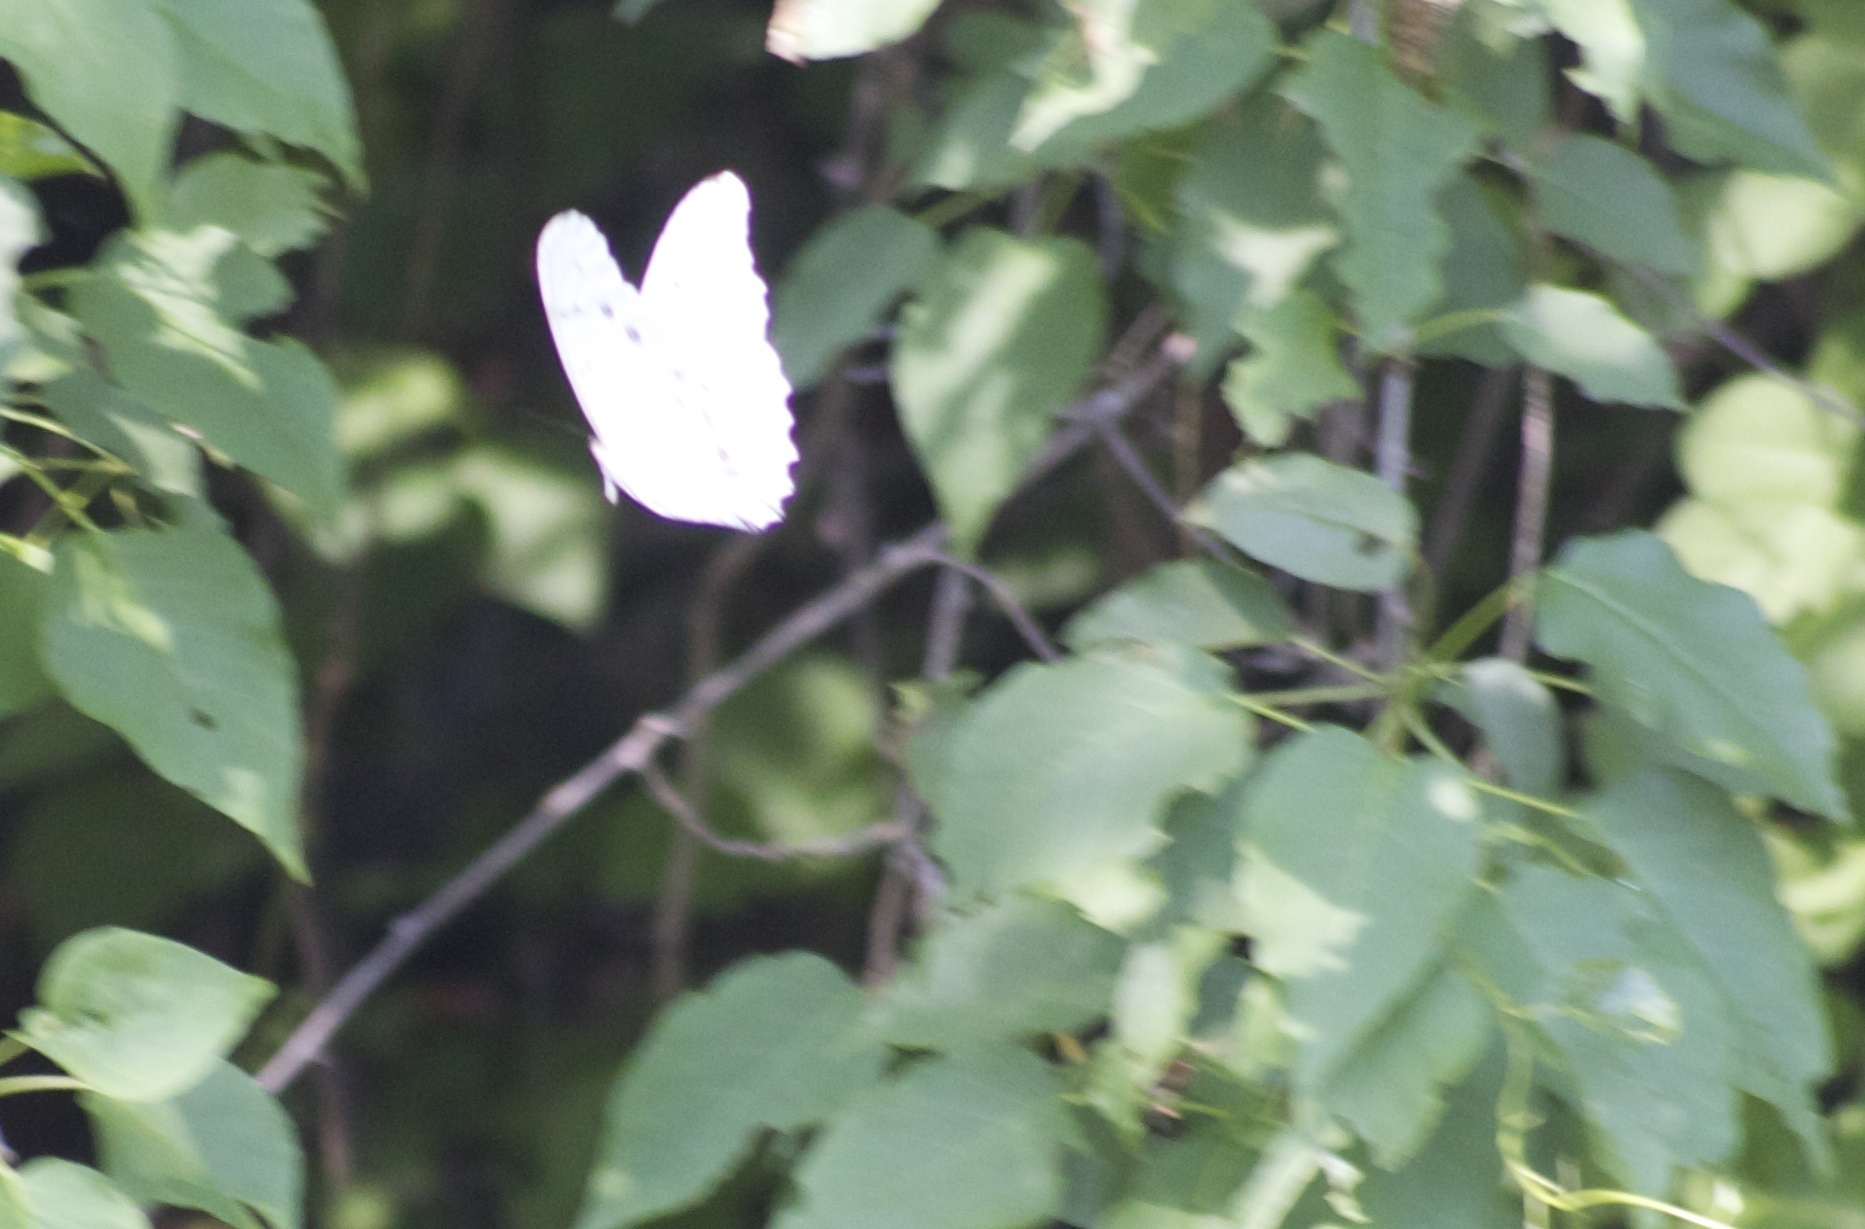 Image of White Morpho